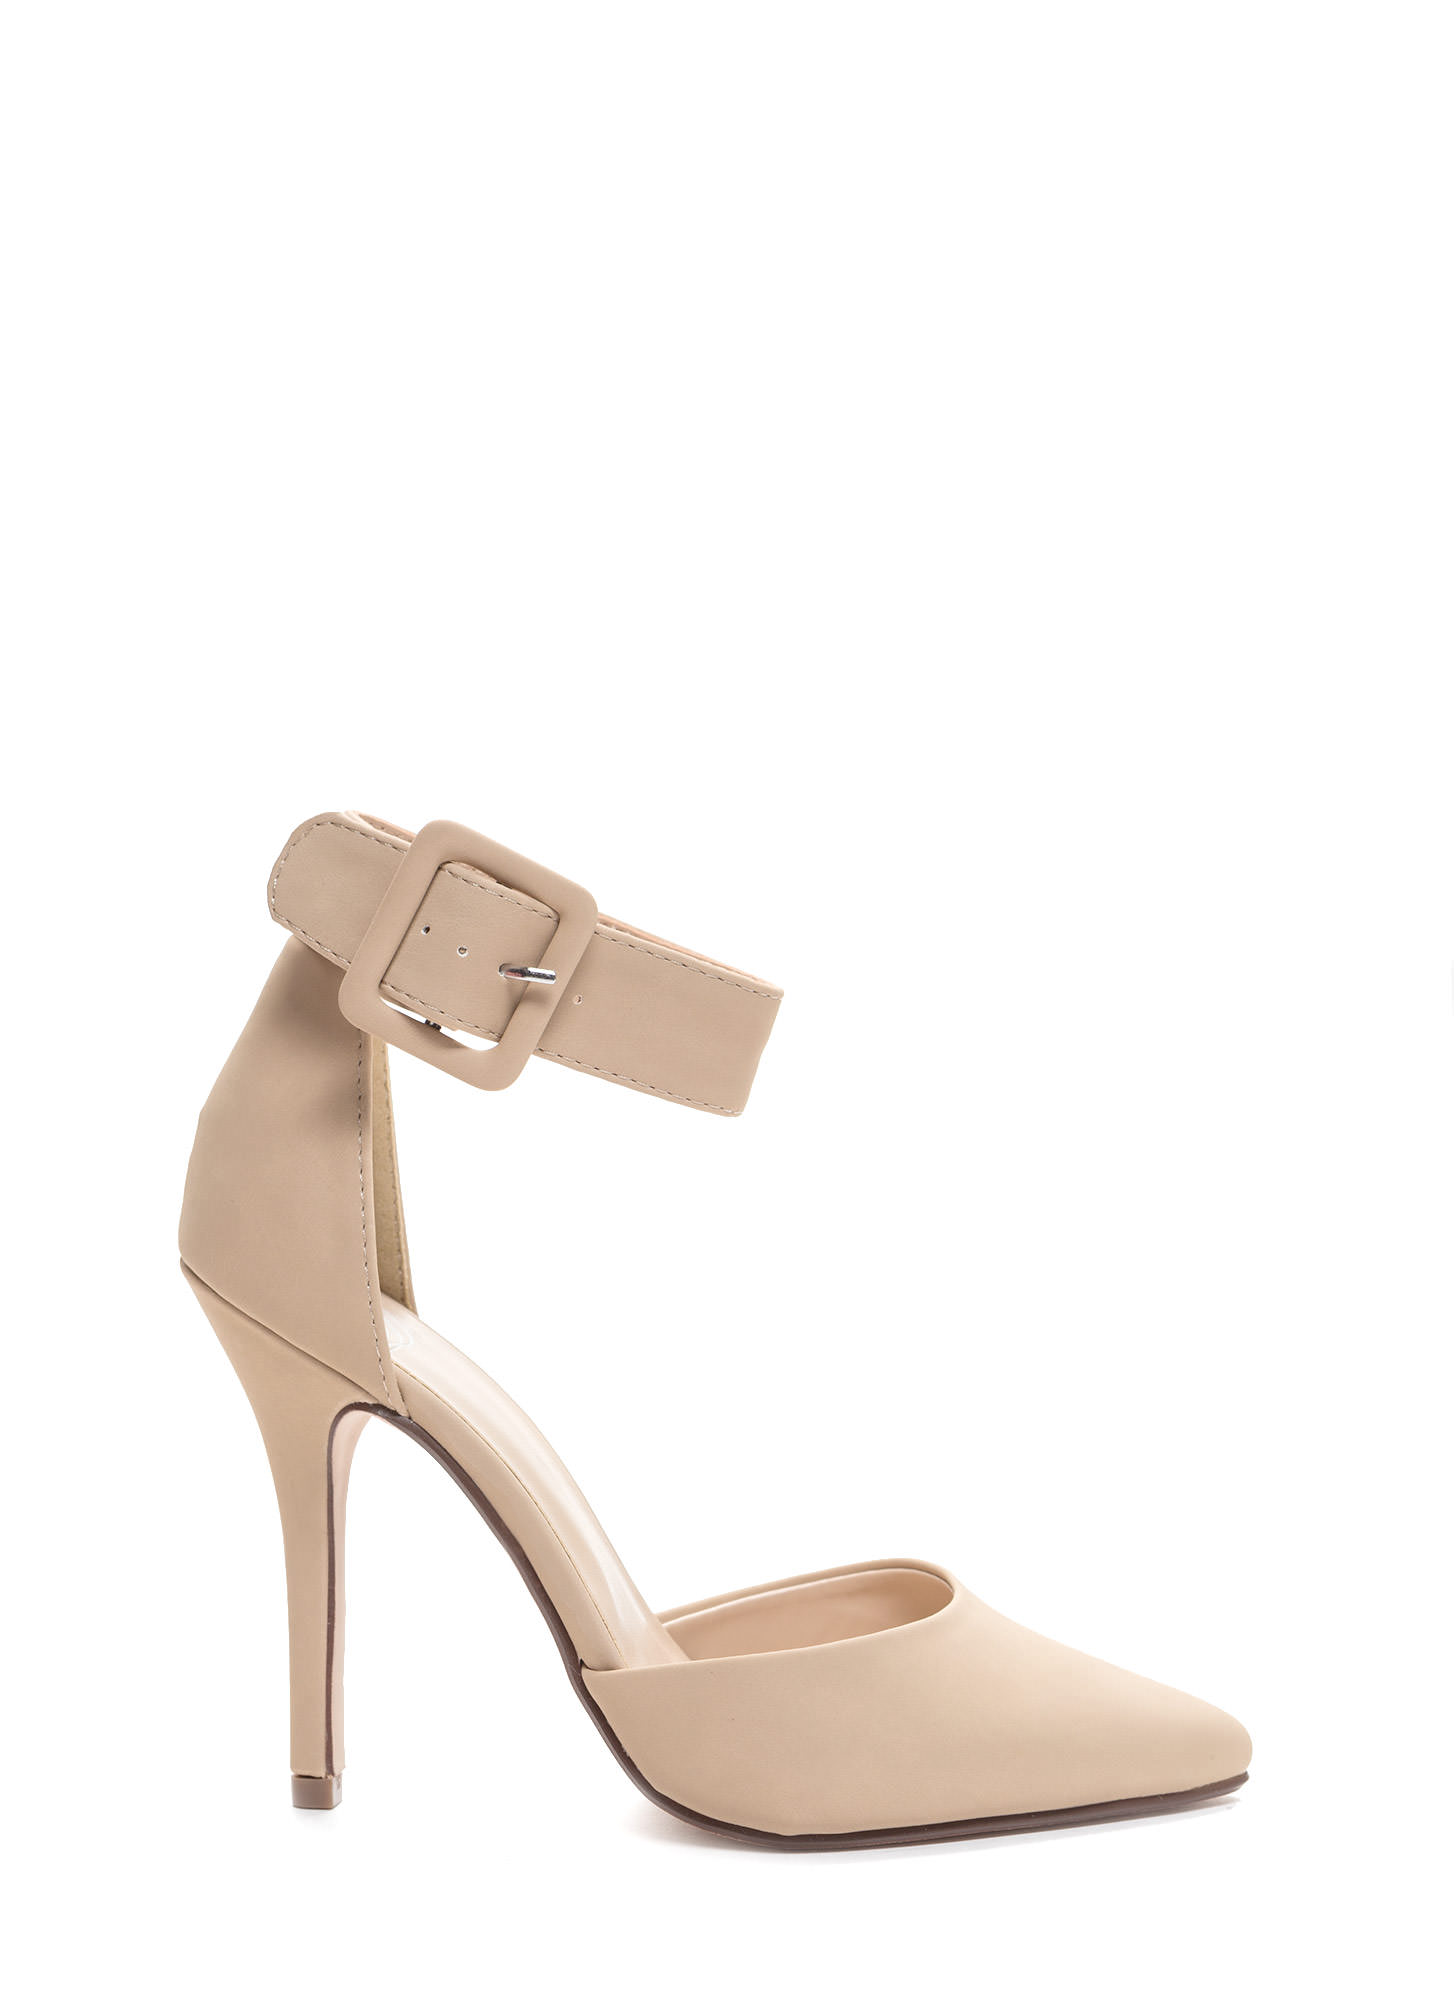 Buckle Up Pointy Toe Pumps BEIGE